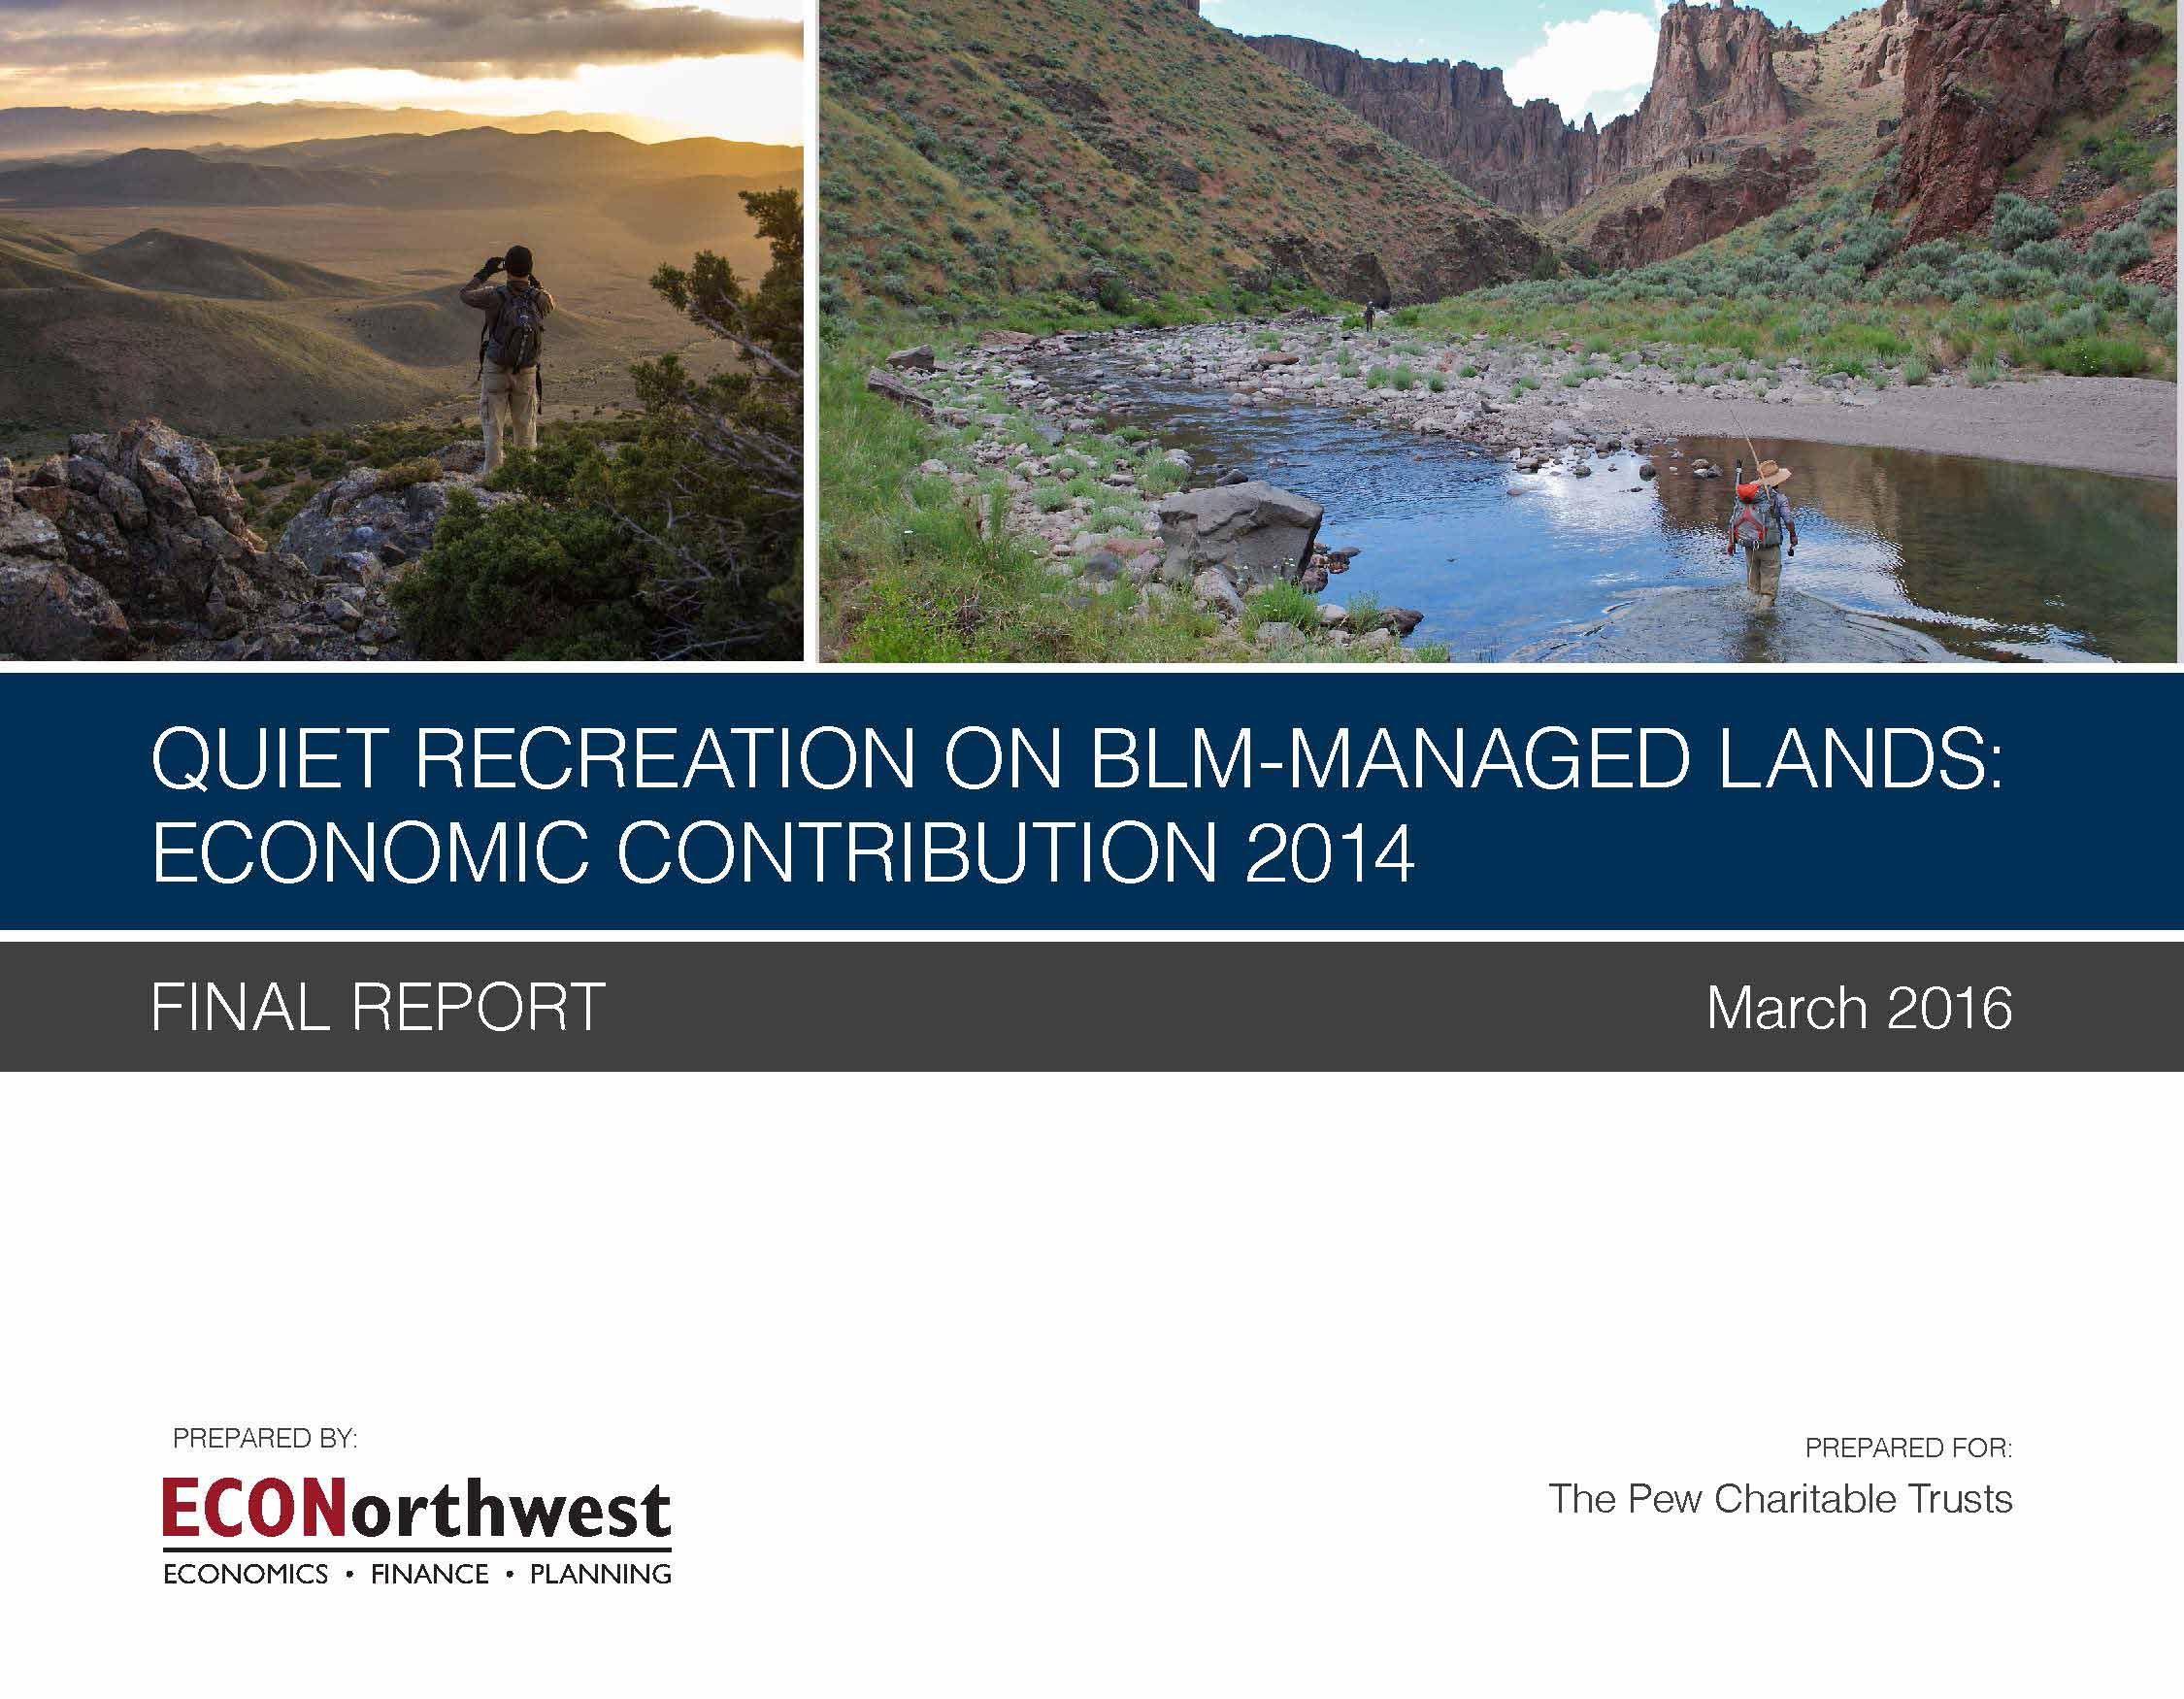 Cover Image–Quiet Recreation On BLM-Managed Lands.jpg